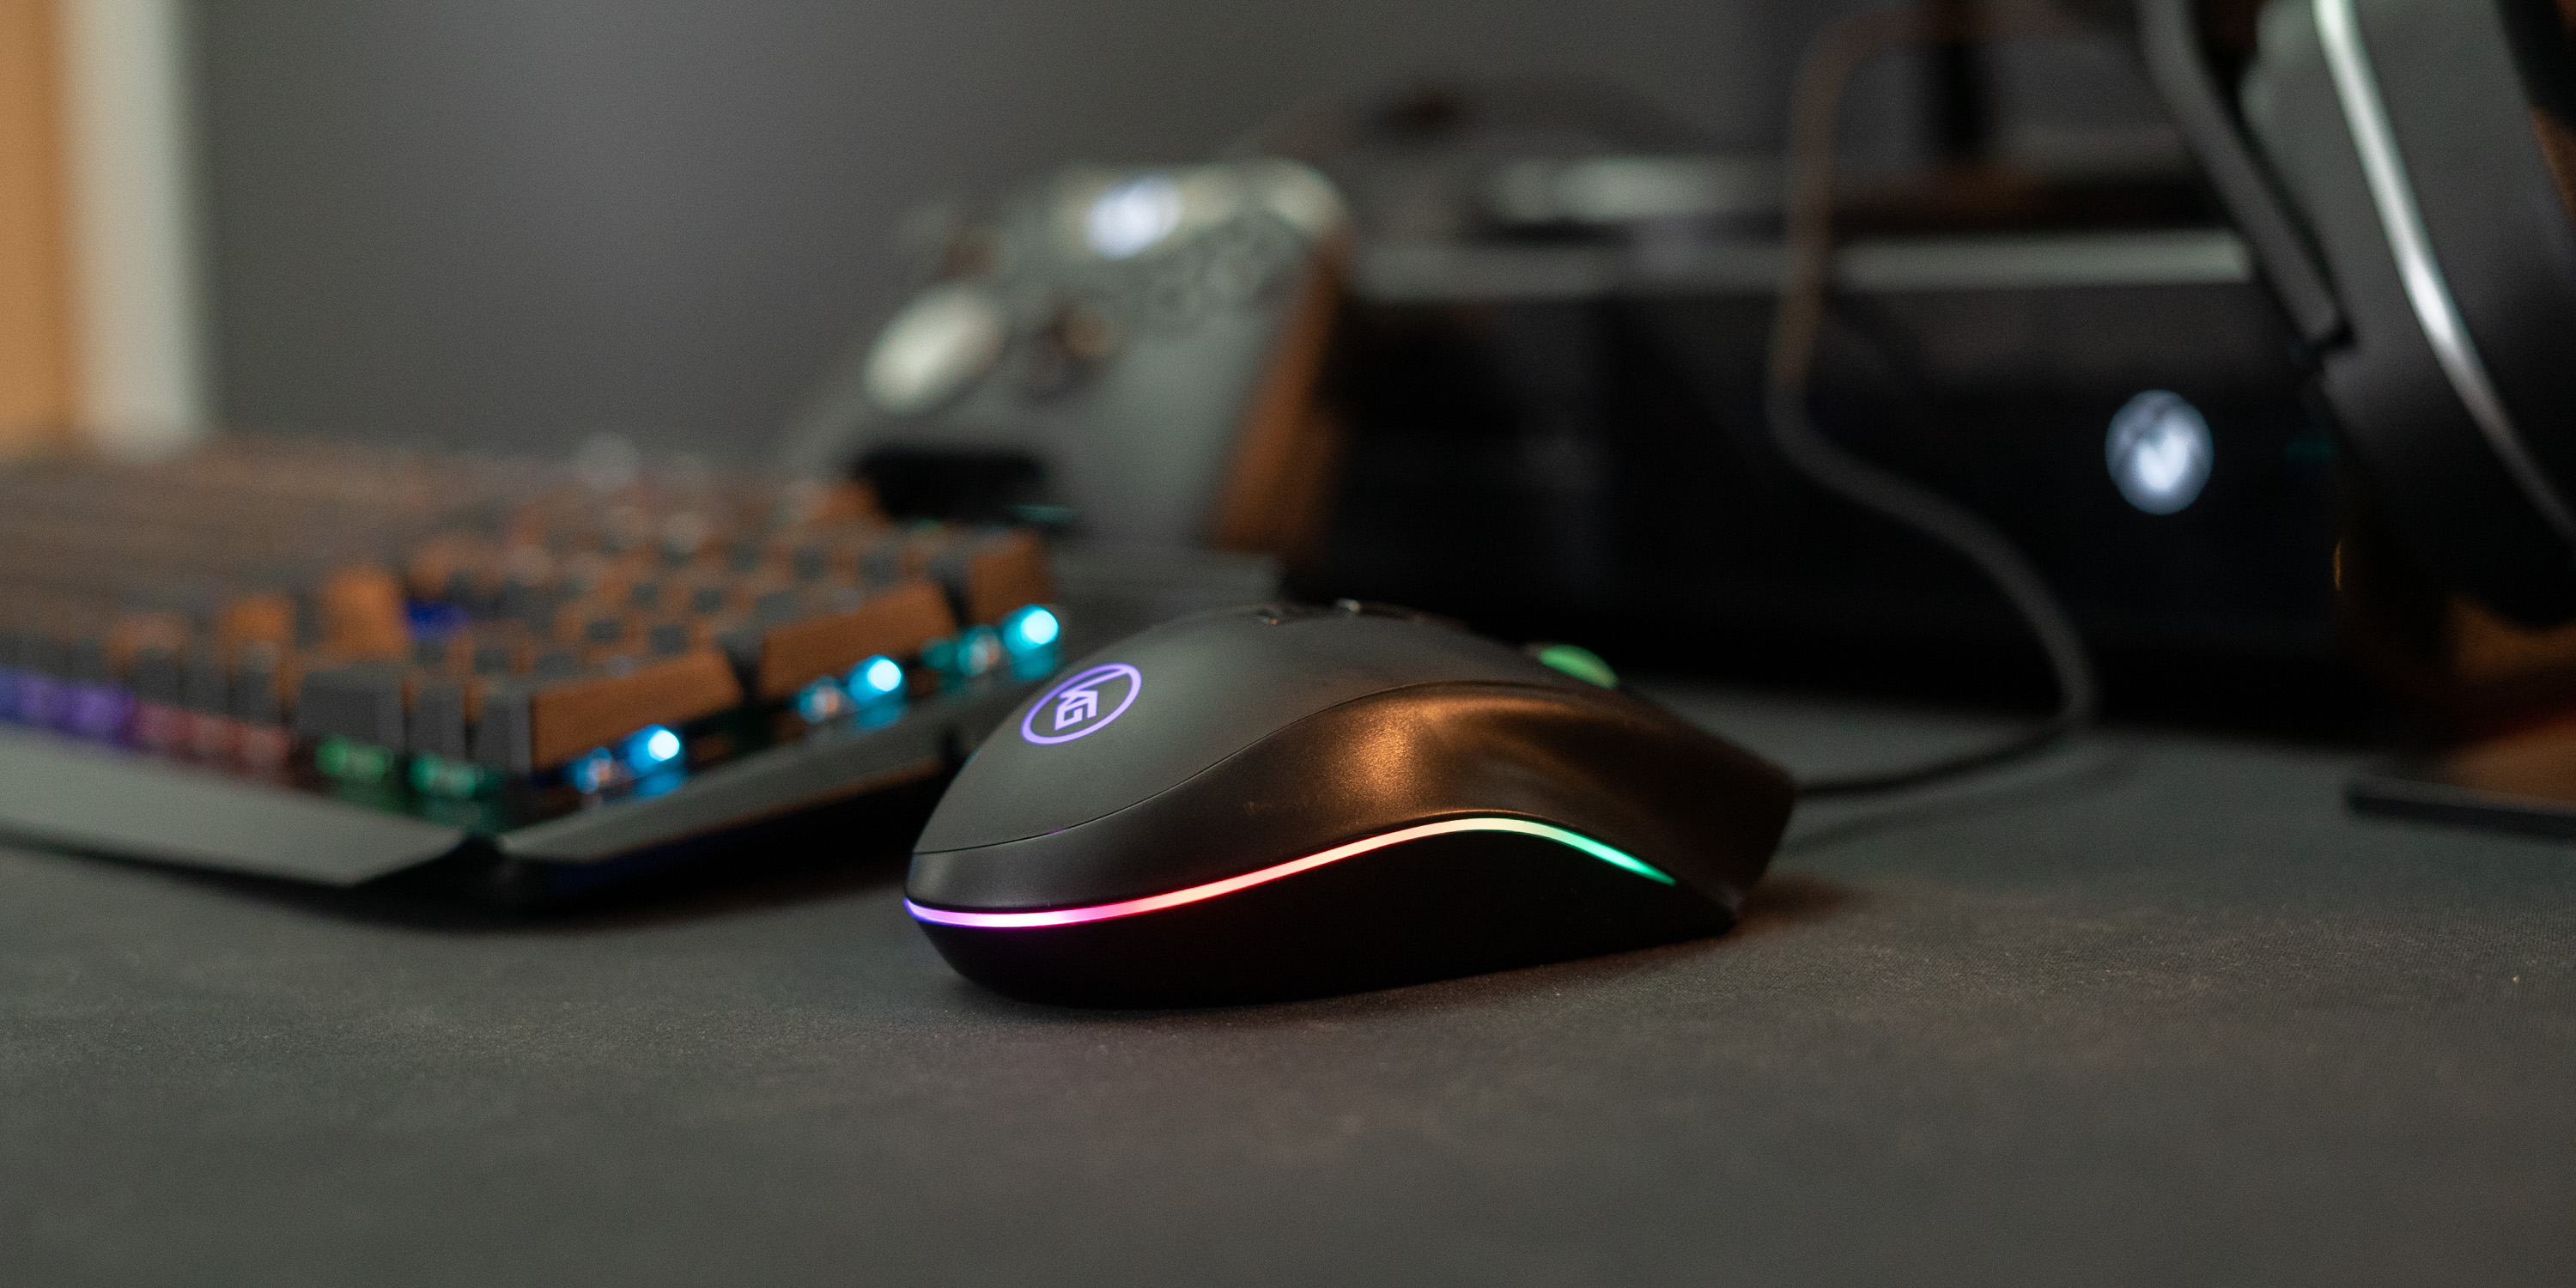 MMOMENTUM Pro mouse in front of Xbox One